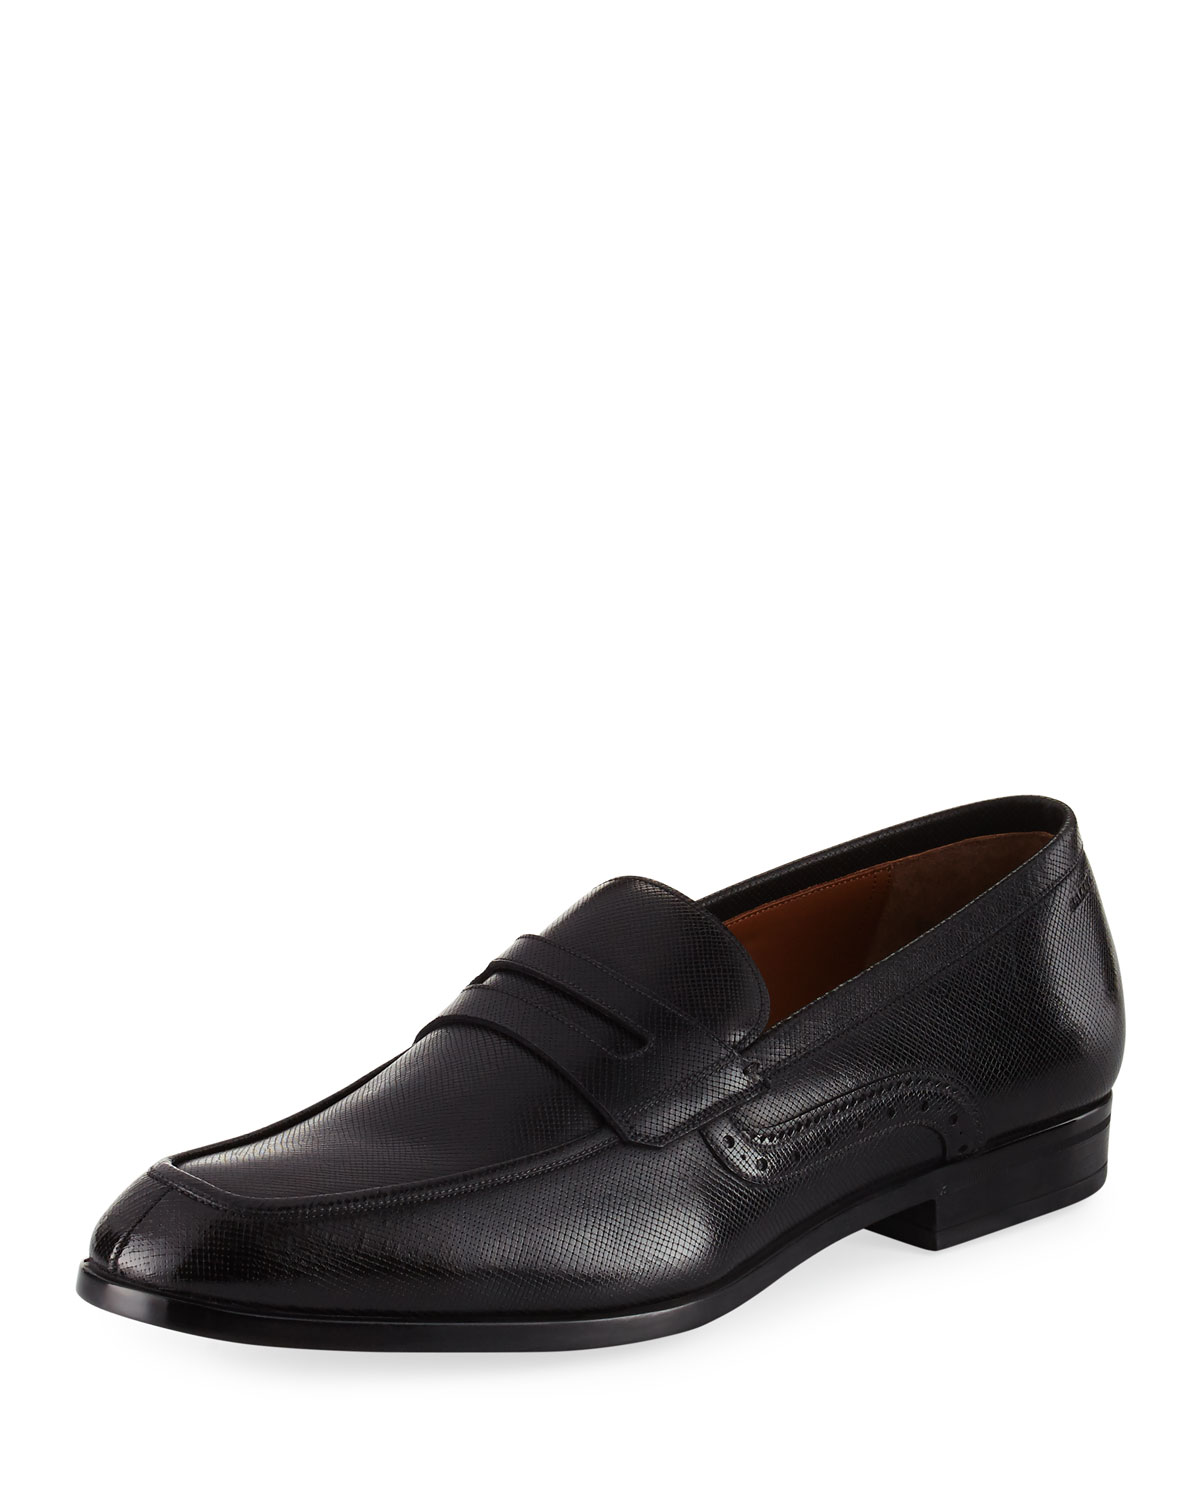 To Boot Textured Leather Penny Loafers 4I5UFqk7